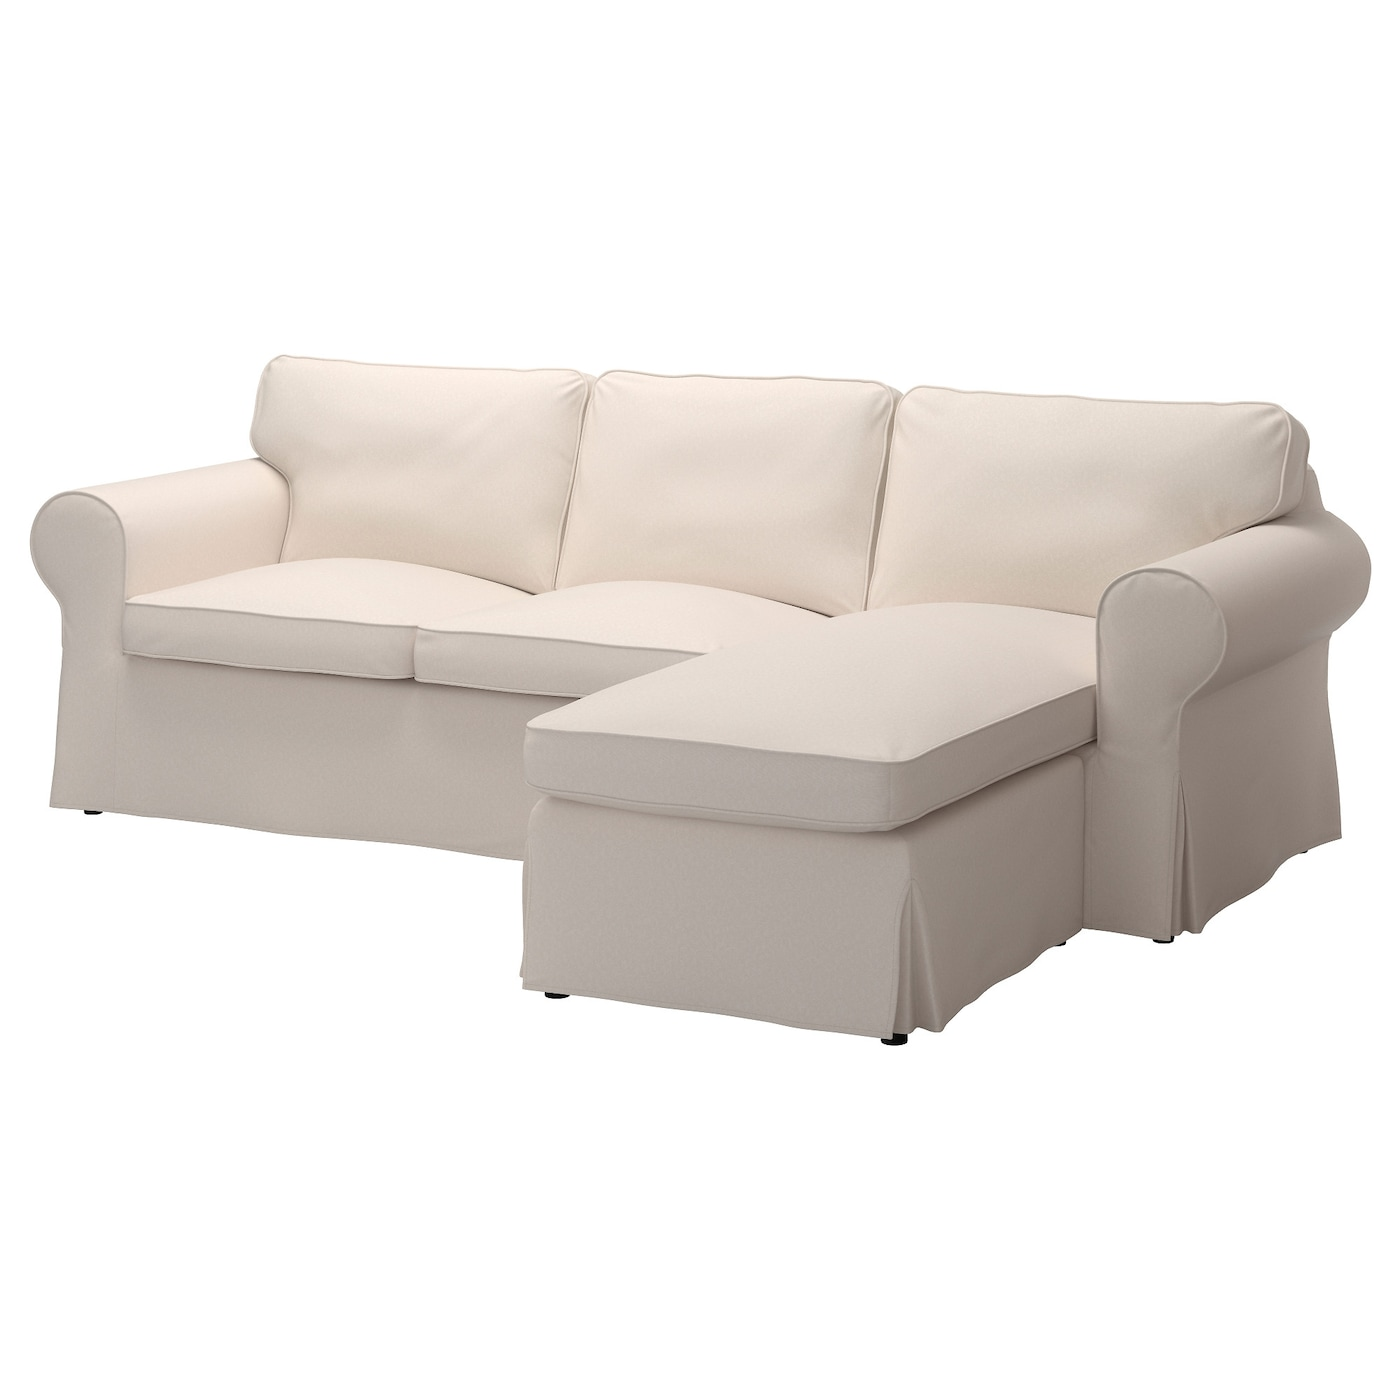 Ektorp two seat sofa and chaise longue lofallet beige ikea for Catalogos de sofas chaise longue